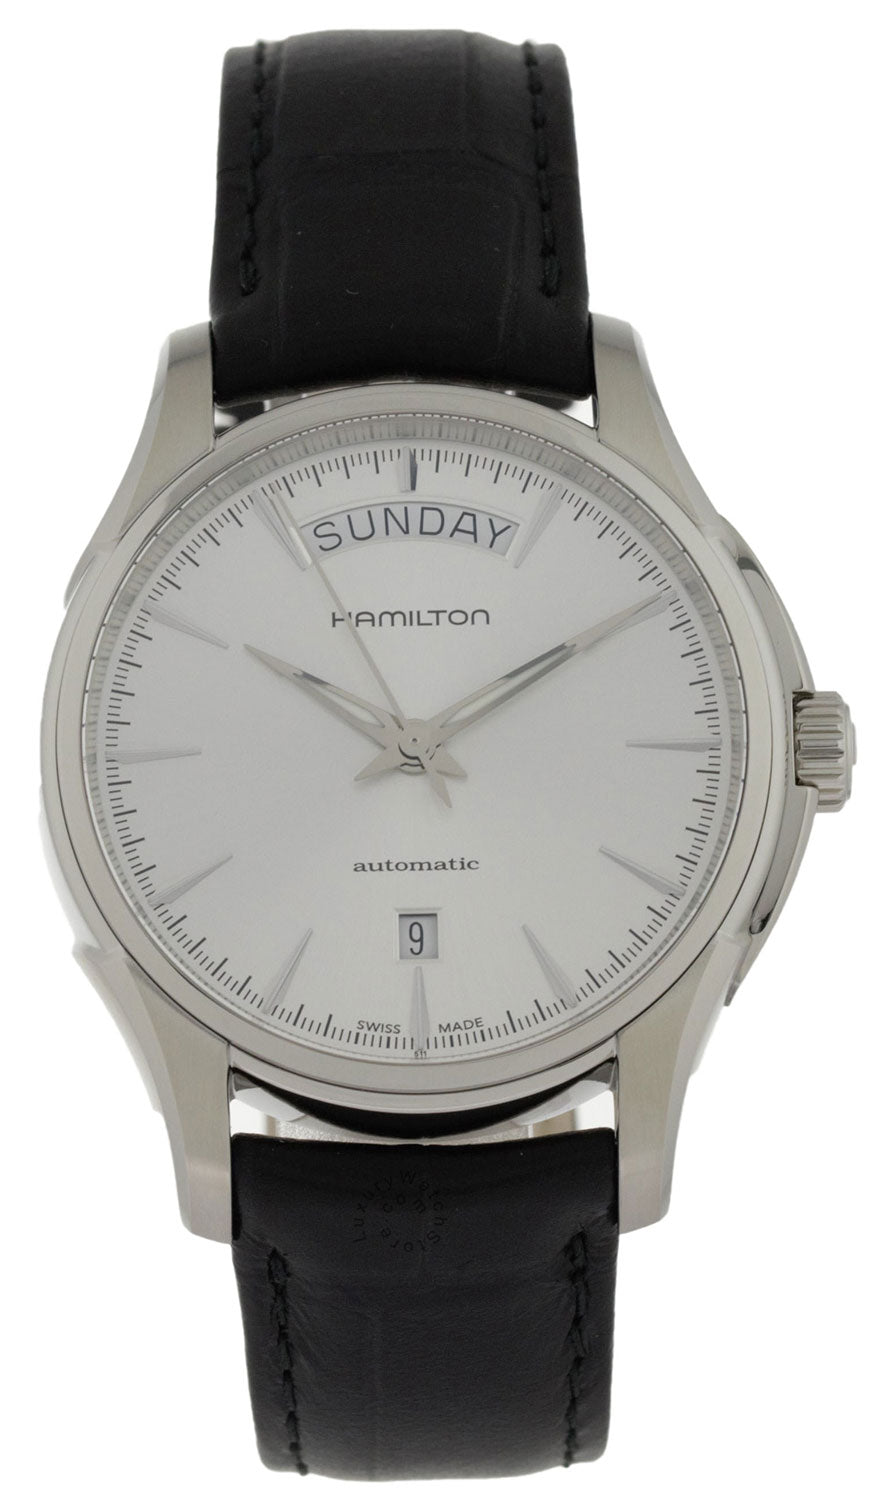 Hamilton Jazzmaster Day Date Silver Dial Leather Auto Watch H32505751